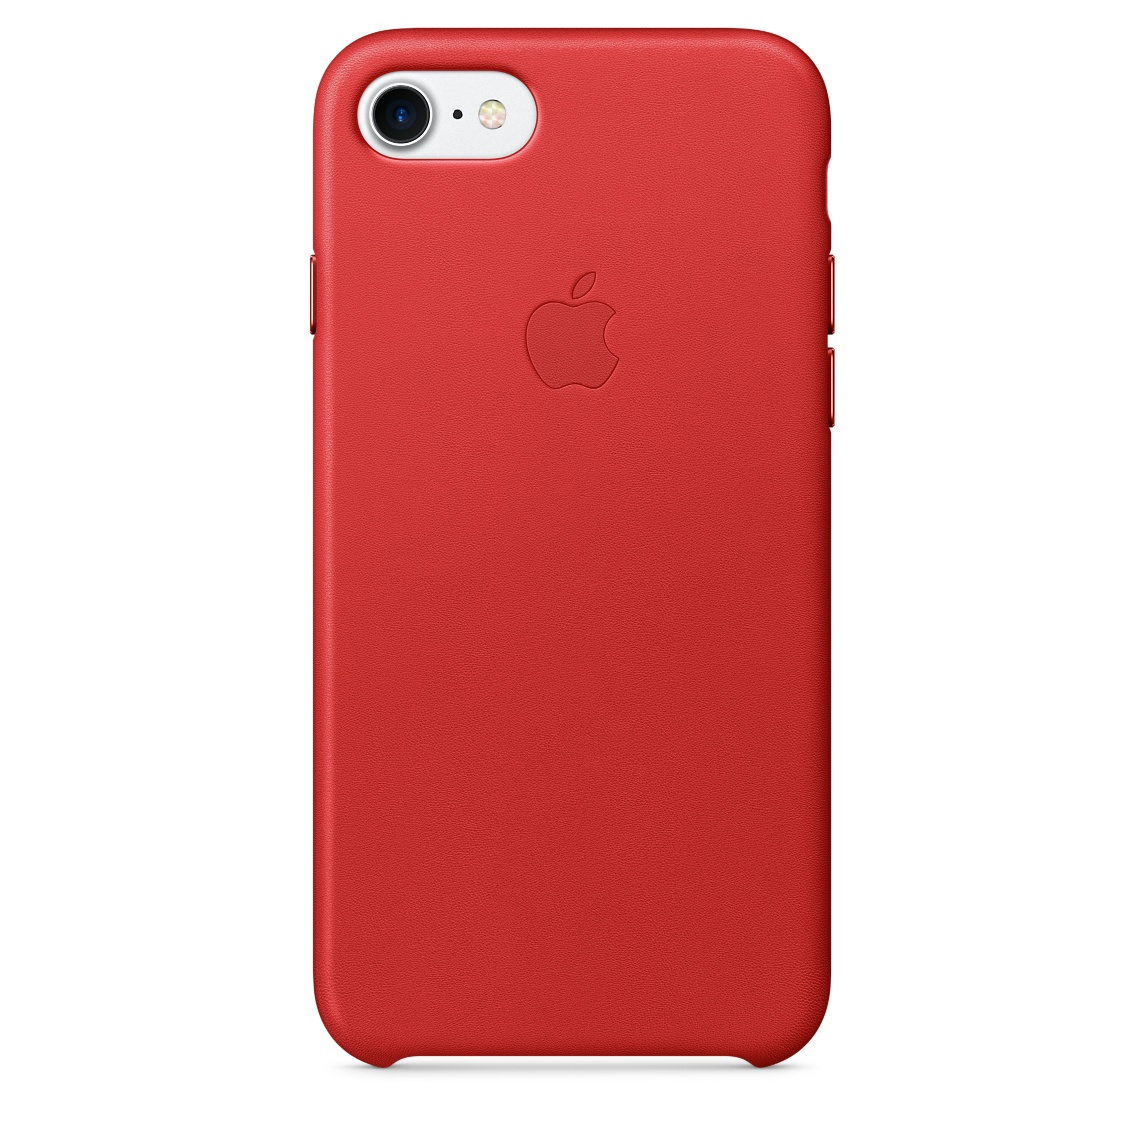 Pouzdro / kryt pro Apple iPhone 7 - Apple, Leather Case Red mmy62zm/a